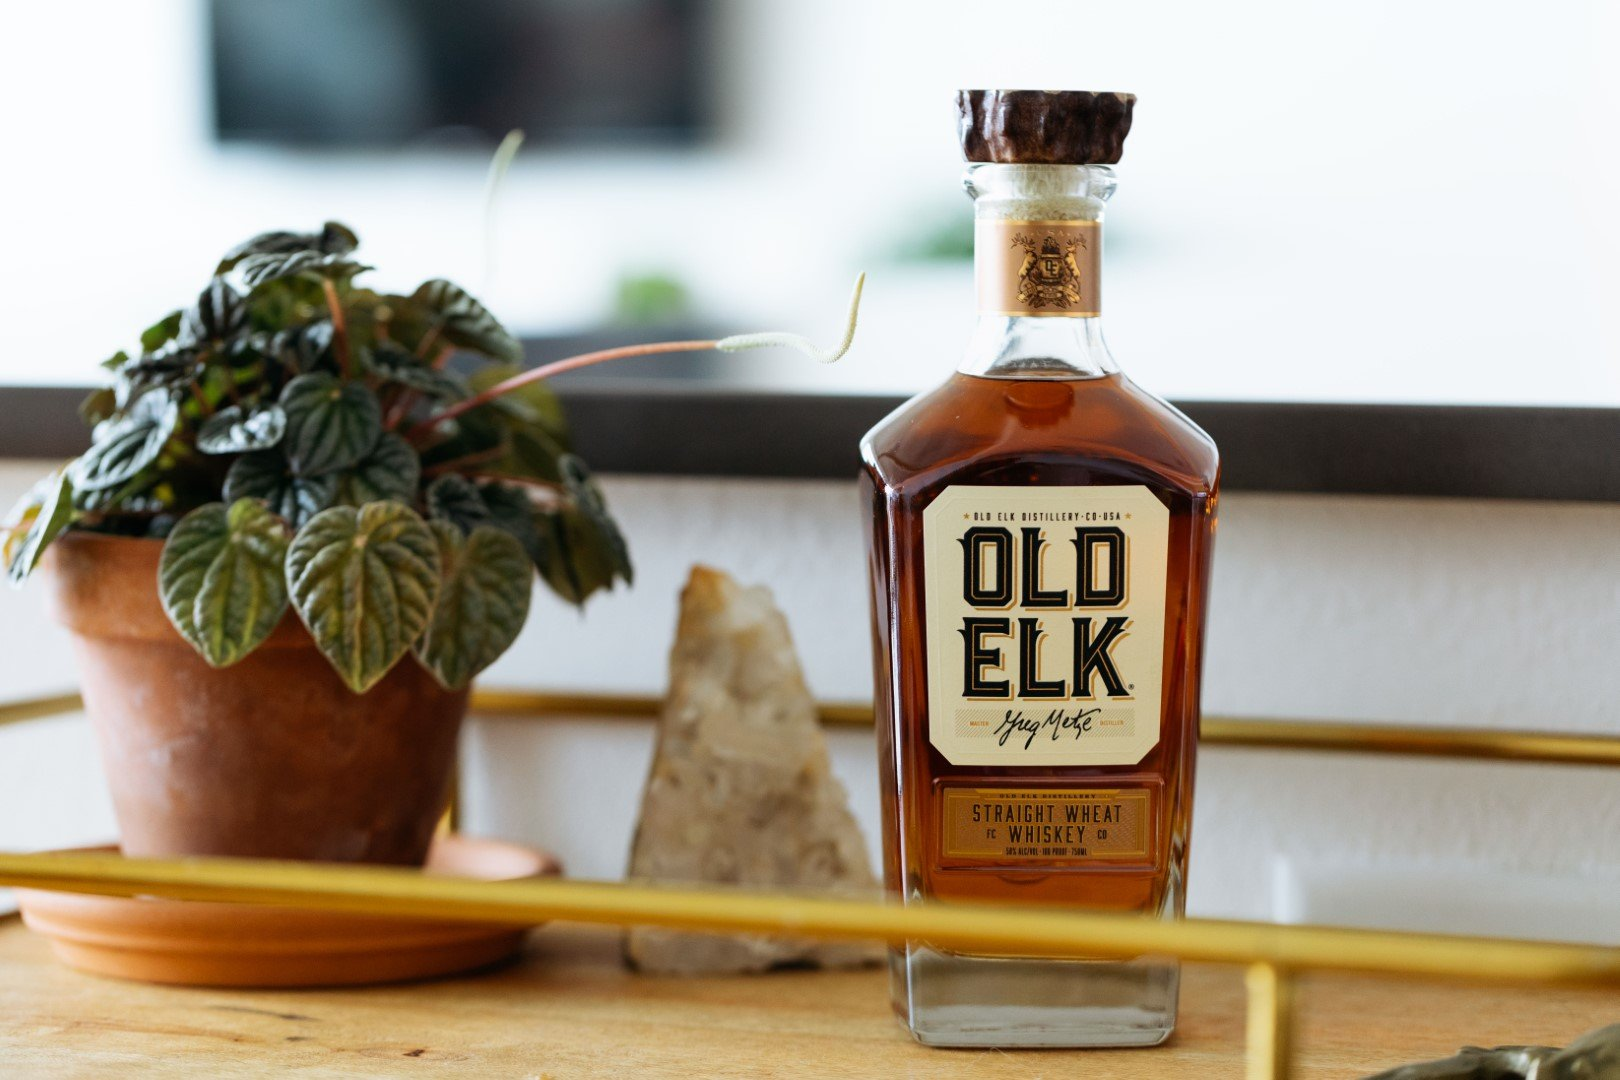 Old Elk Straight Wheat Whiskey (2020)